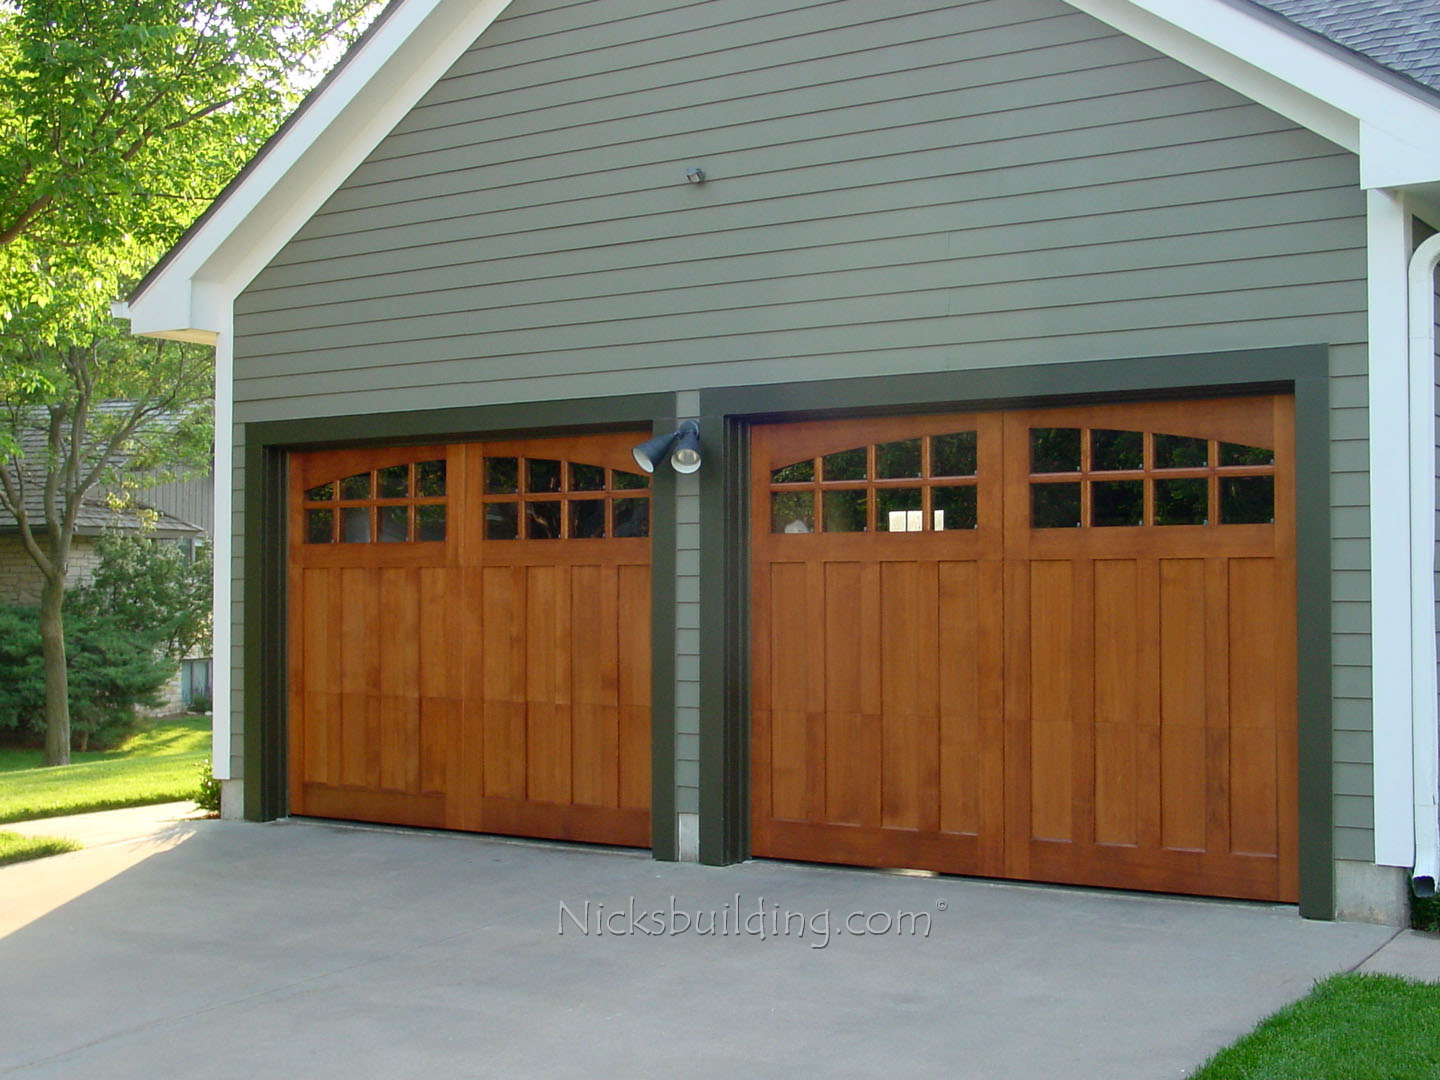 The Original. Overhead Door Clearwater Port Richey. FL. Replace